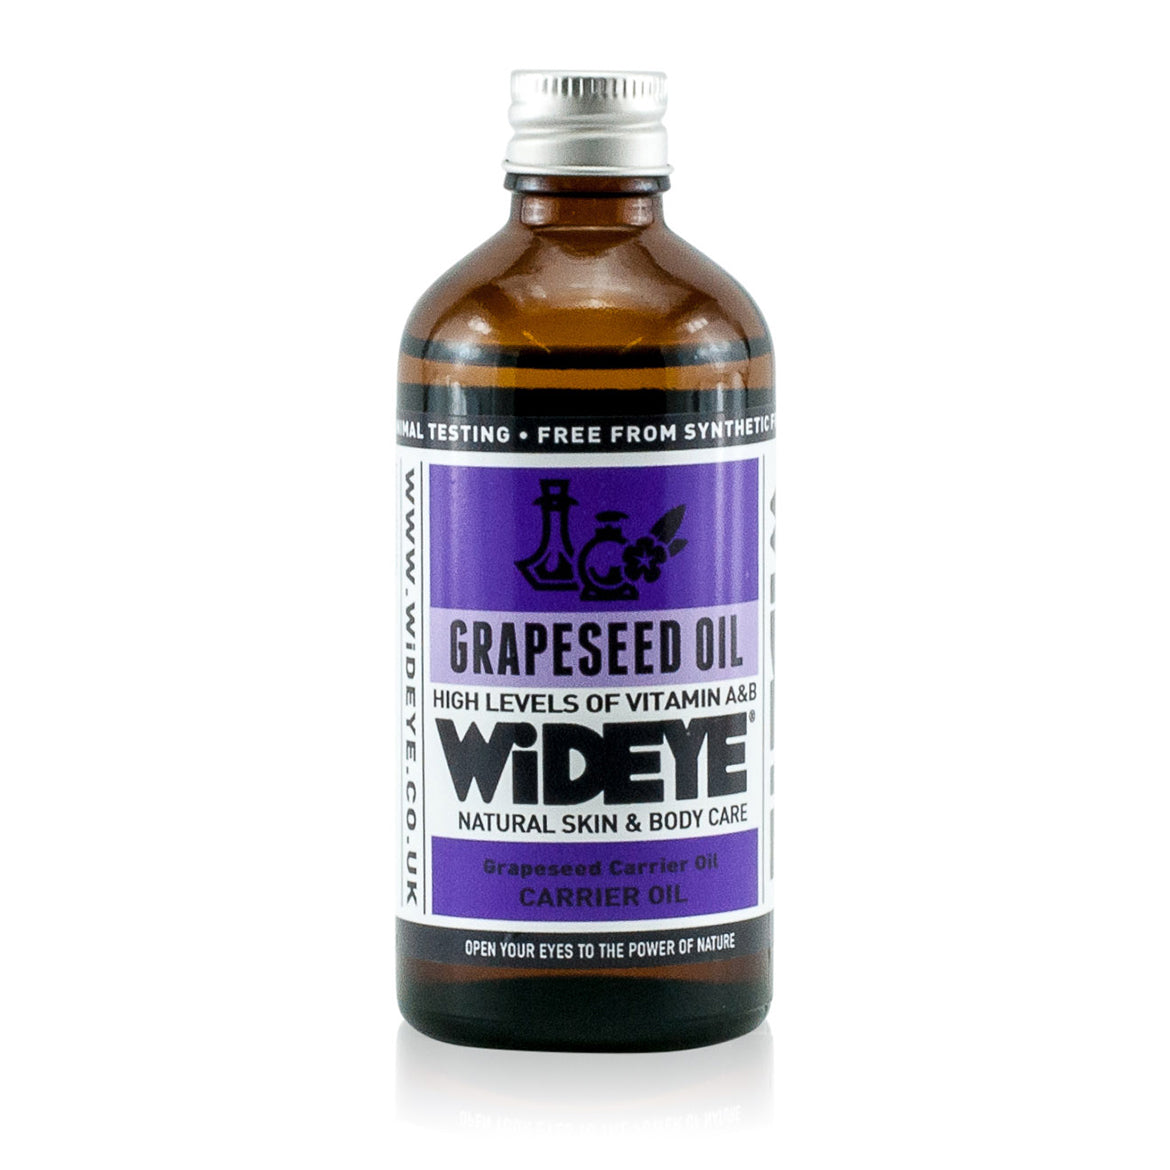 Natural aromatherapy Grapeseed carrier oil in glass bottle for blending and massage handmade by WiDEYE in Rye.